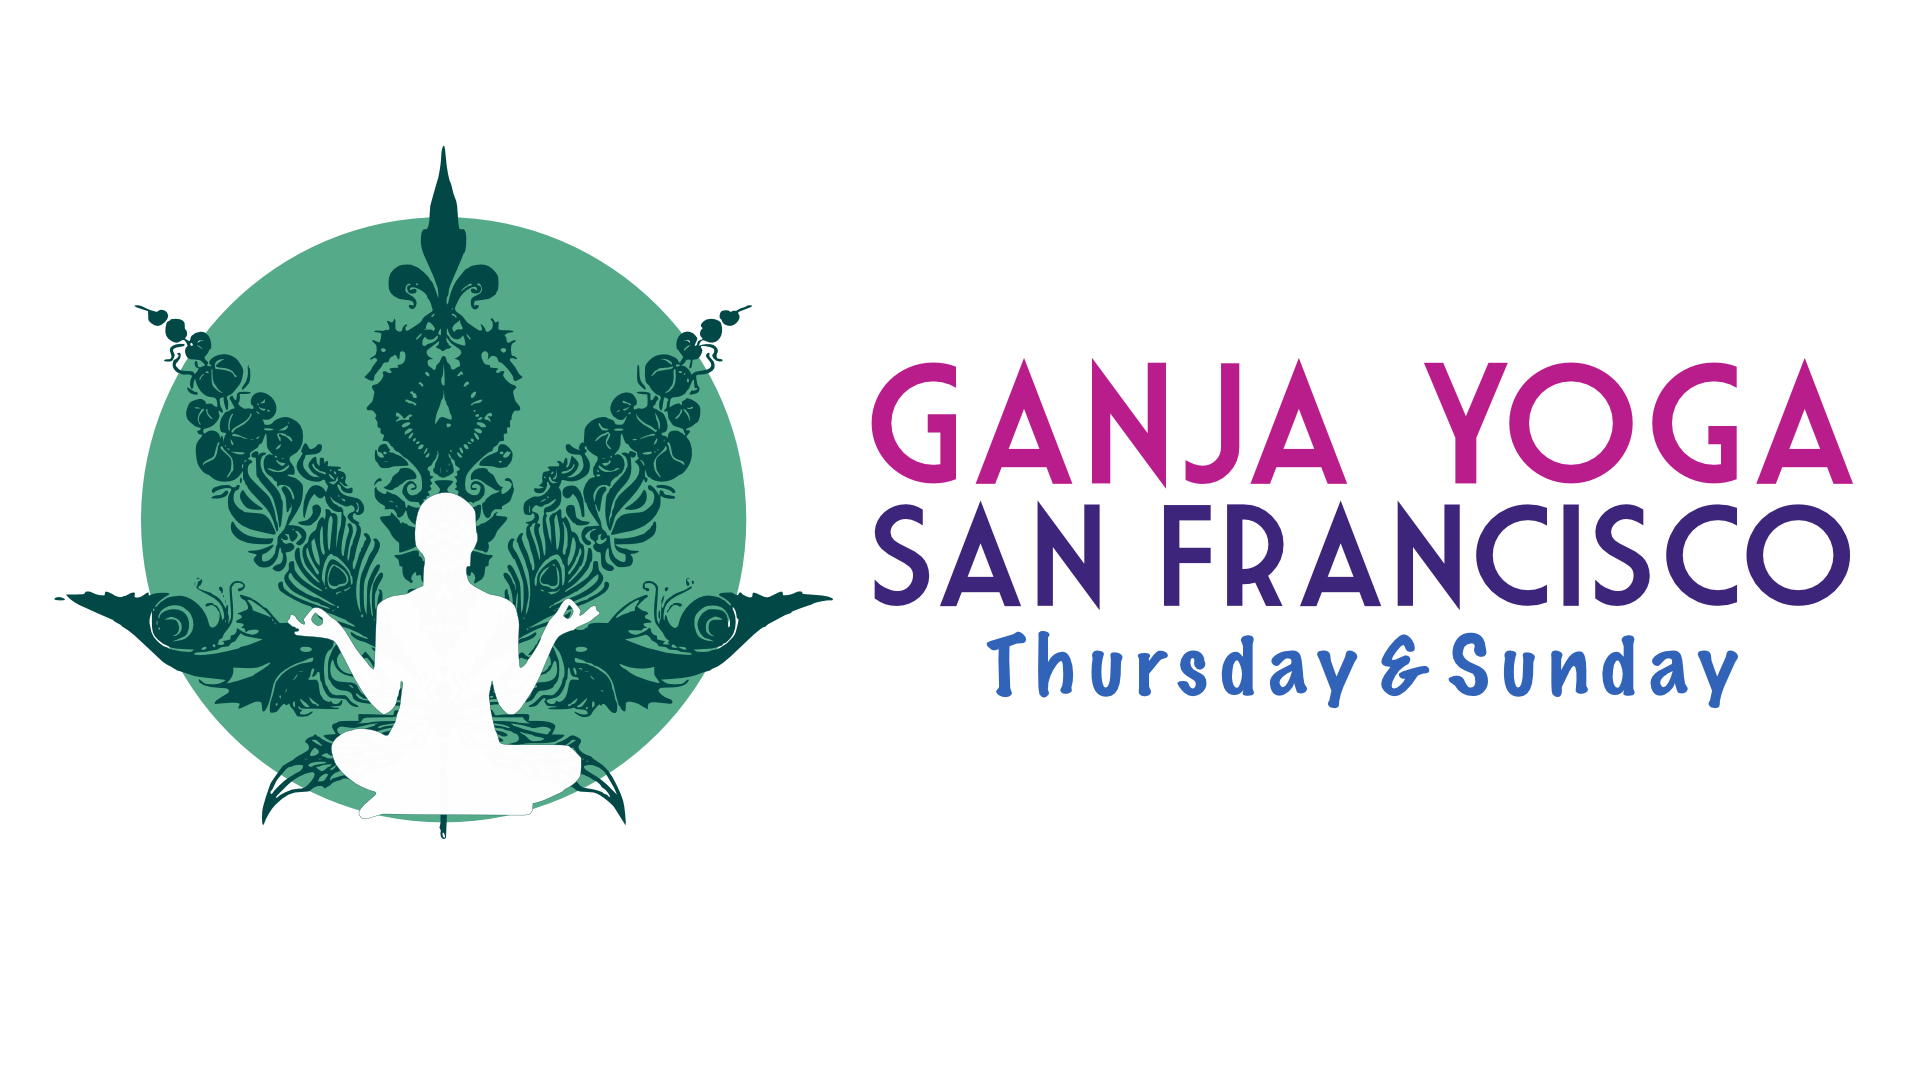 Ganja Yoga San Francisco - Toking Thursday